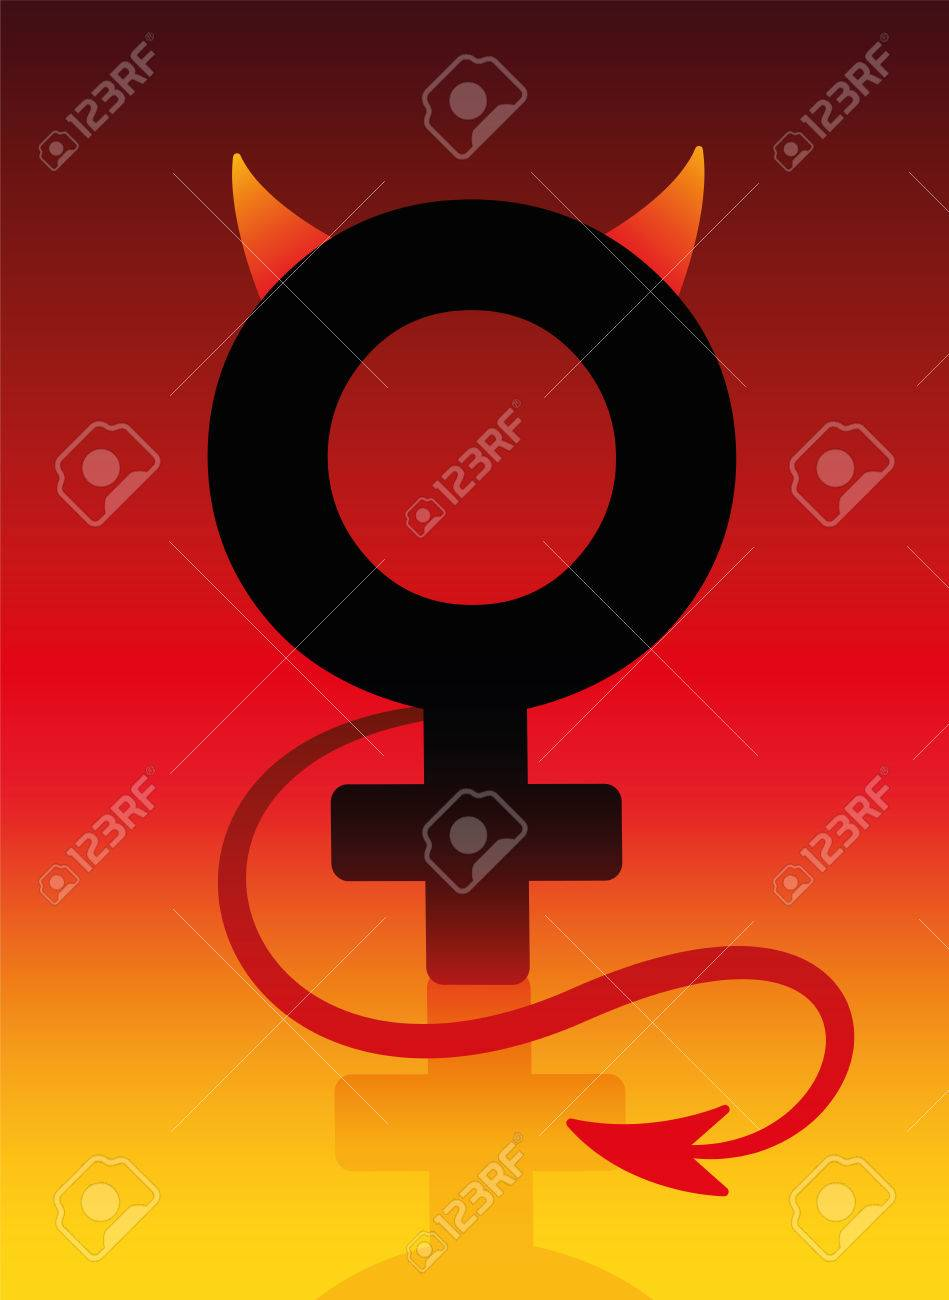 Female devil sign with tails and horns on blazing background female devil sign with tails and horns on blazing background as a symbol for a bad buycottarizona